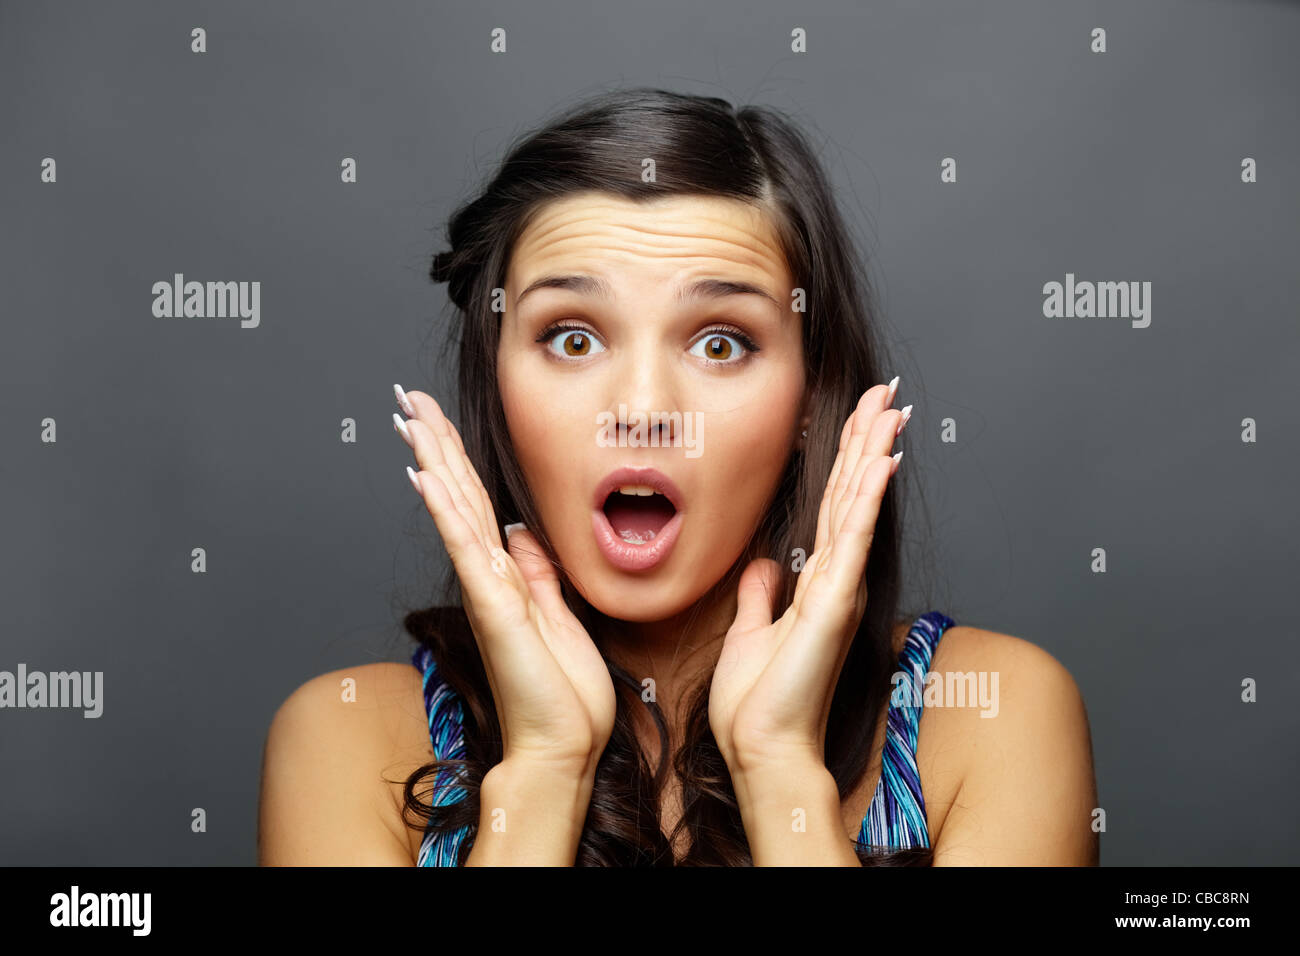 Portrait of astonished brunette looking at camera - Stock Image